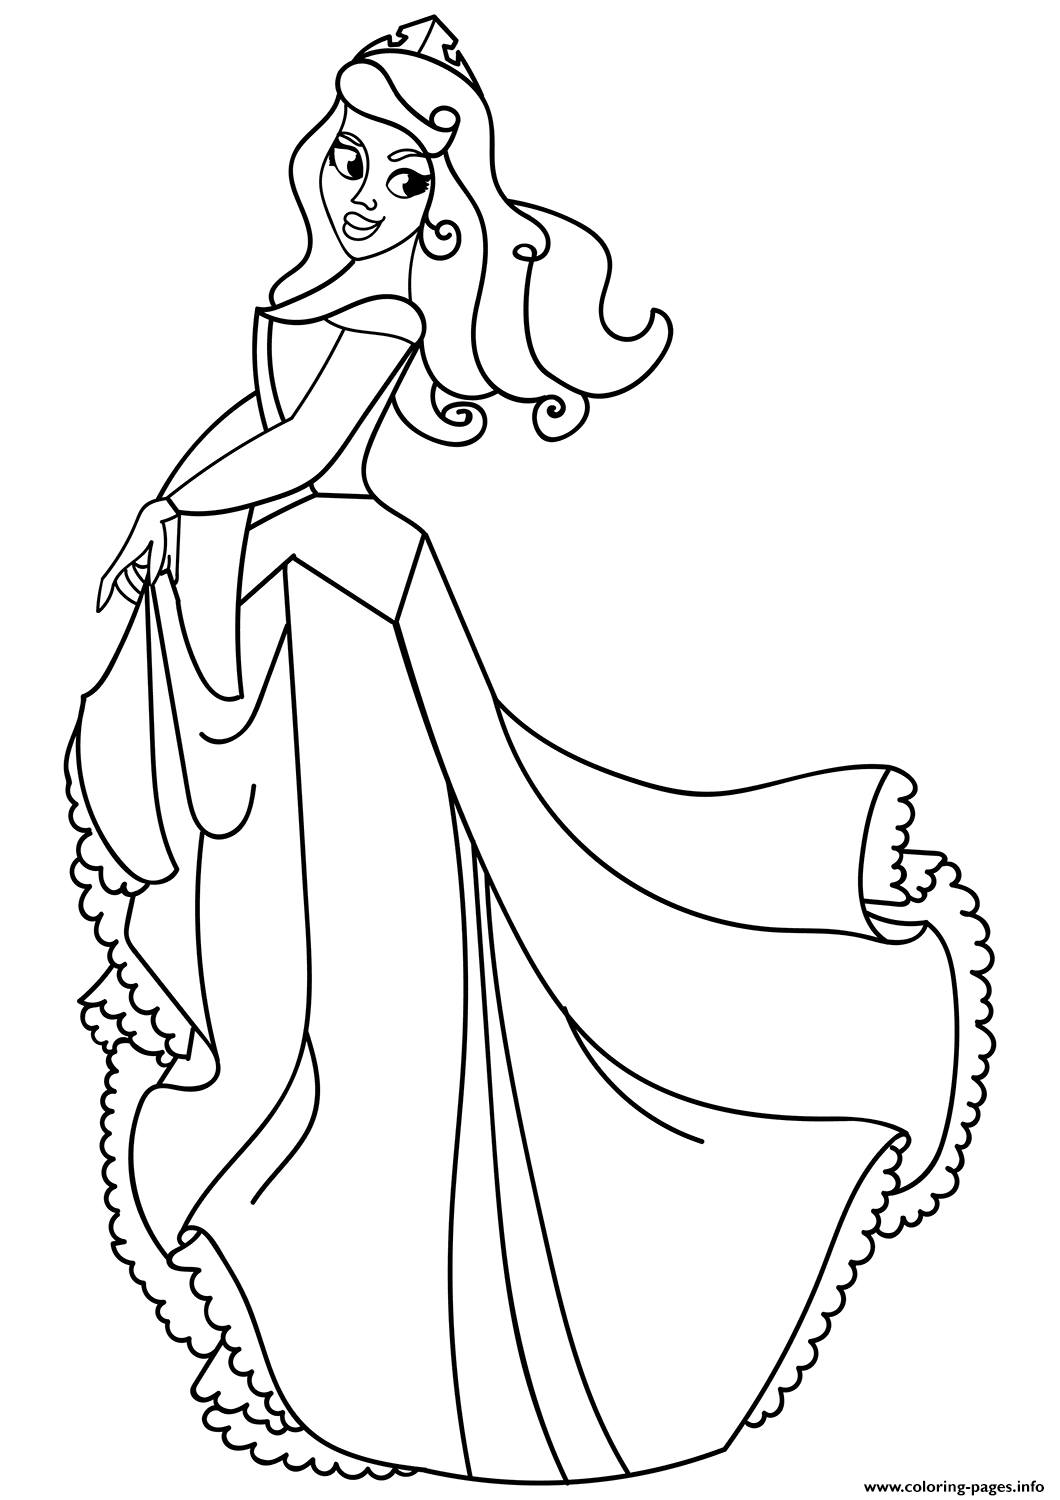 Fancy Dress Coloring Pages - Bing images | Coloring pages, Cute ... | 1500x1060